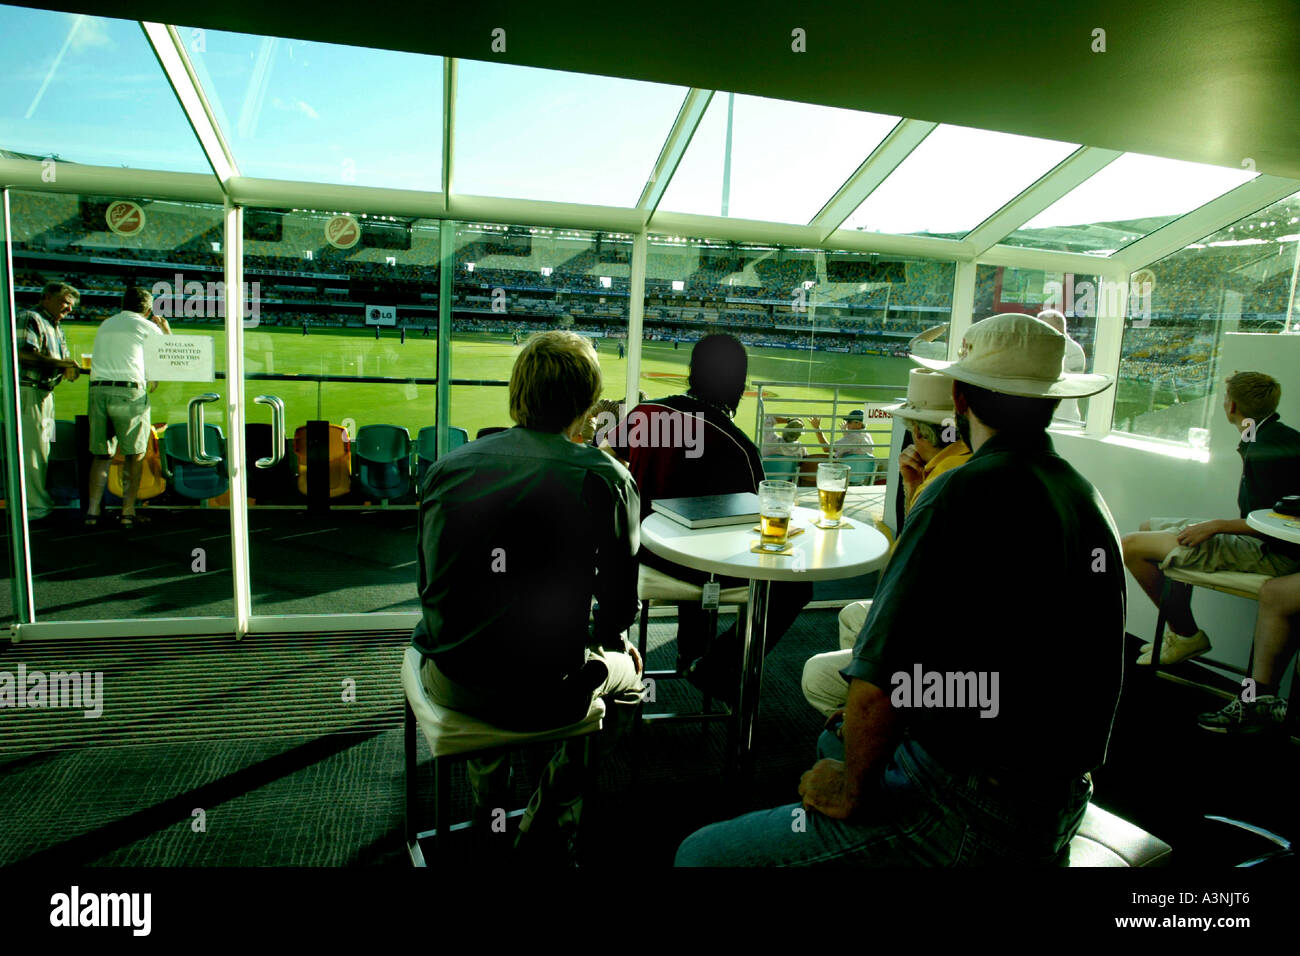 Members bar at the Gabba in Brisbane - Stock Image